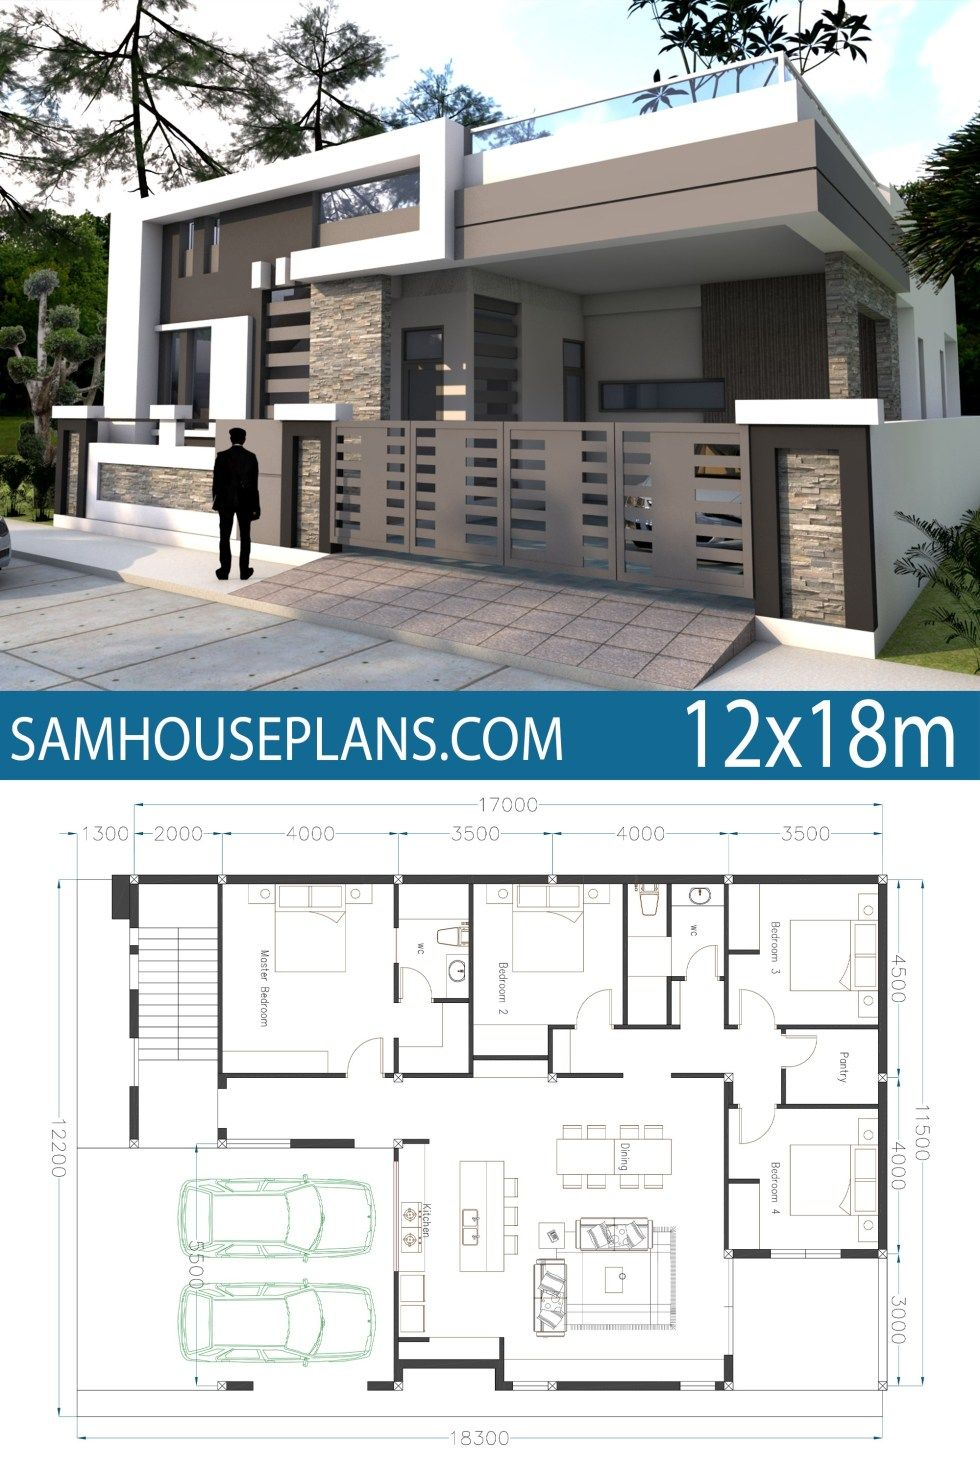 Home Design 40x60f With 4 Bedrooms Sam House Plans Small Modern House Plans Single Floor House Design House Layouts